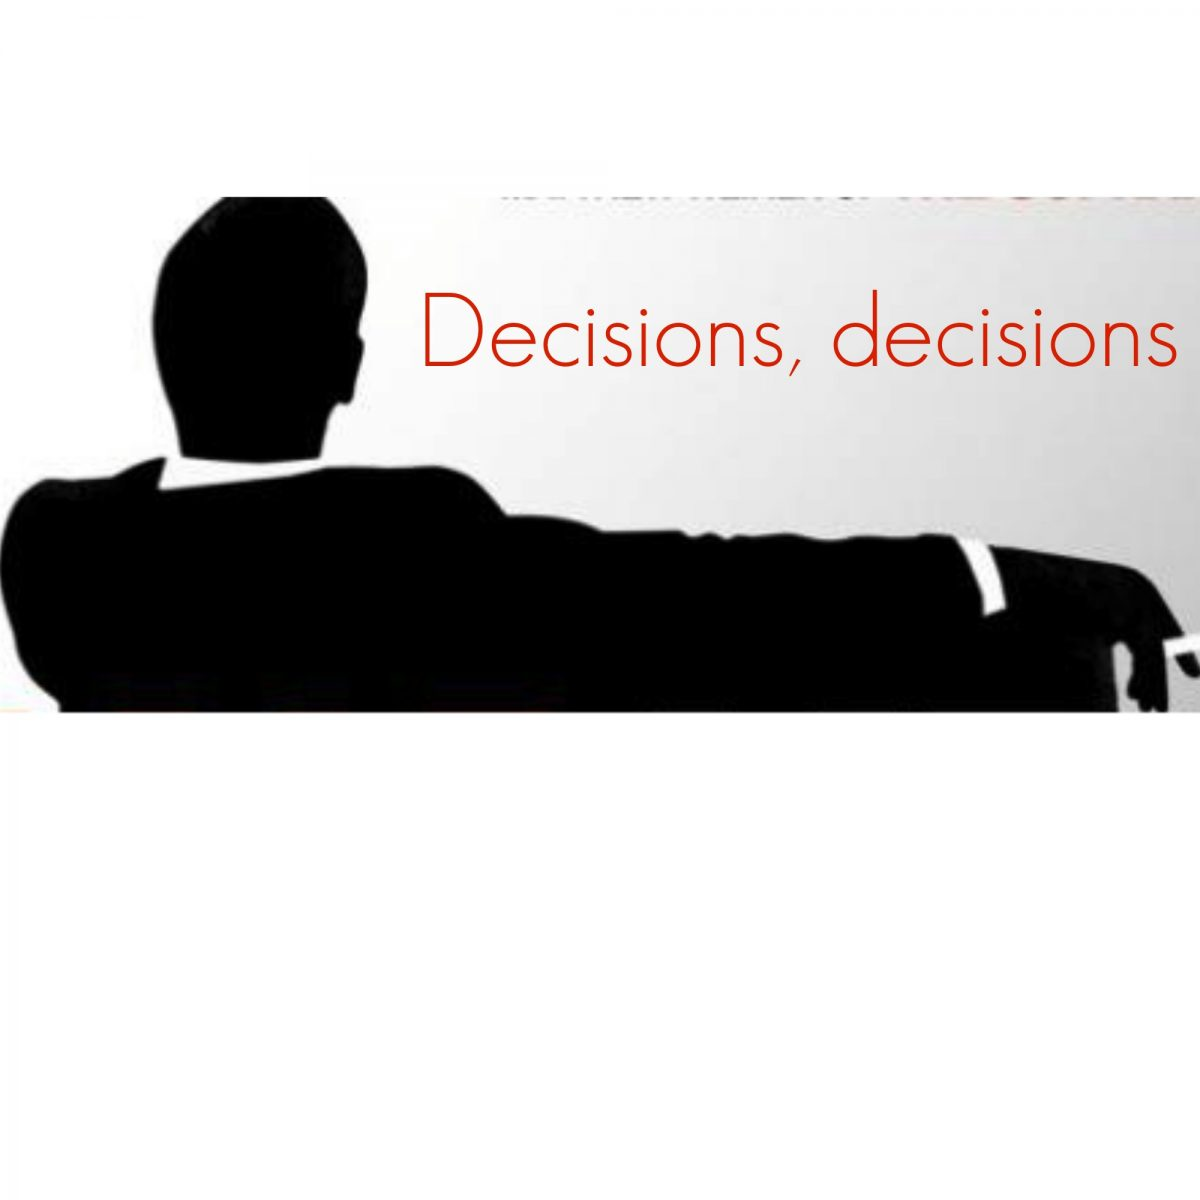 It Had to Be You: On Decision Making